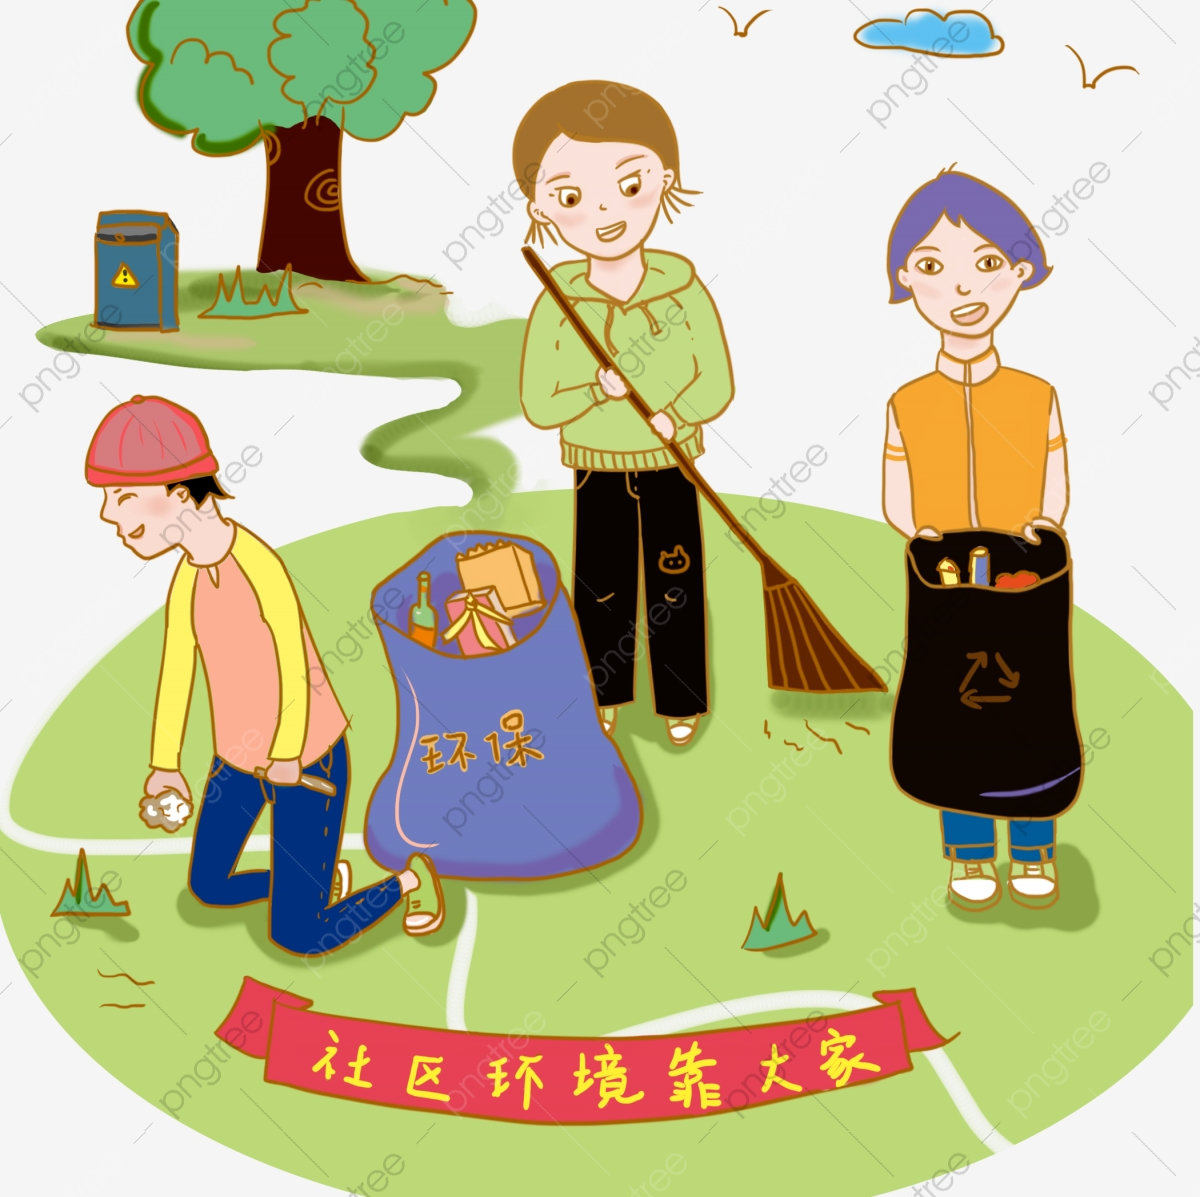 Environment clipart clean community. Environmental protection cleaning service